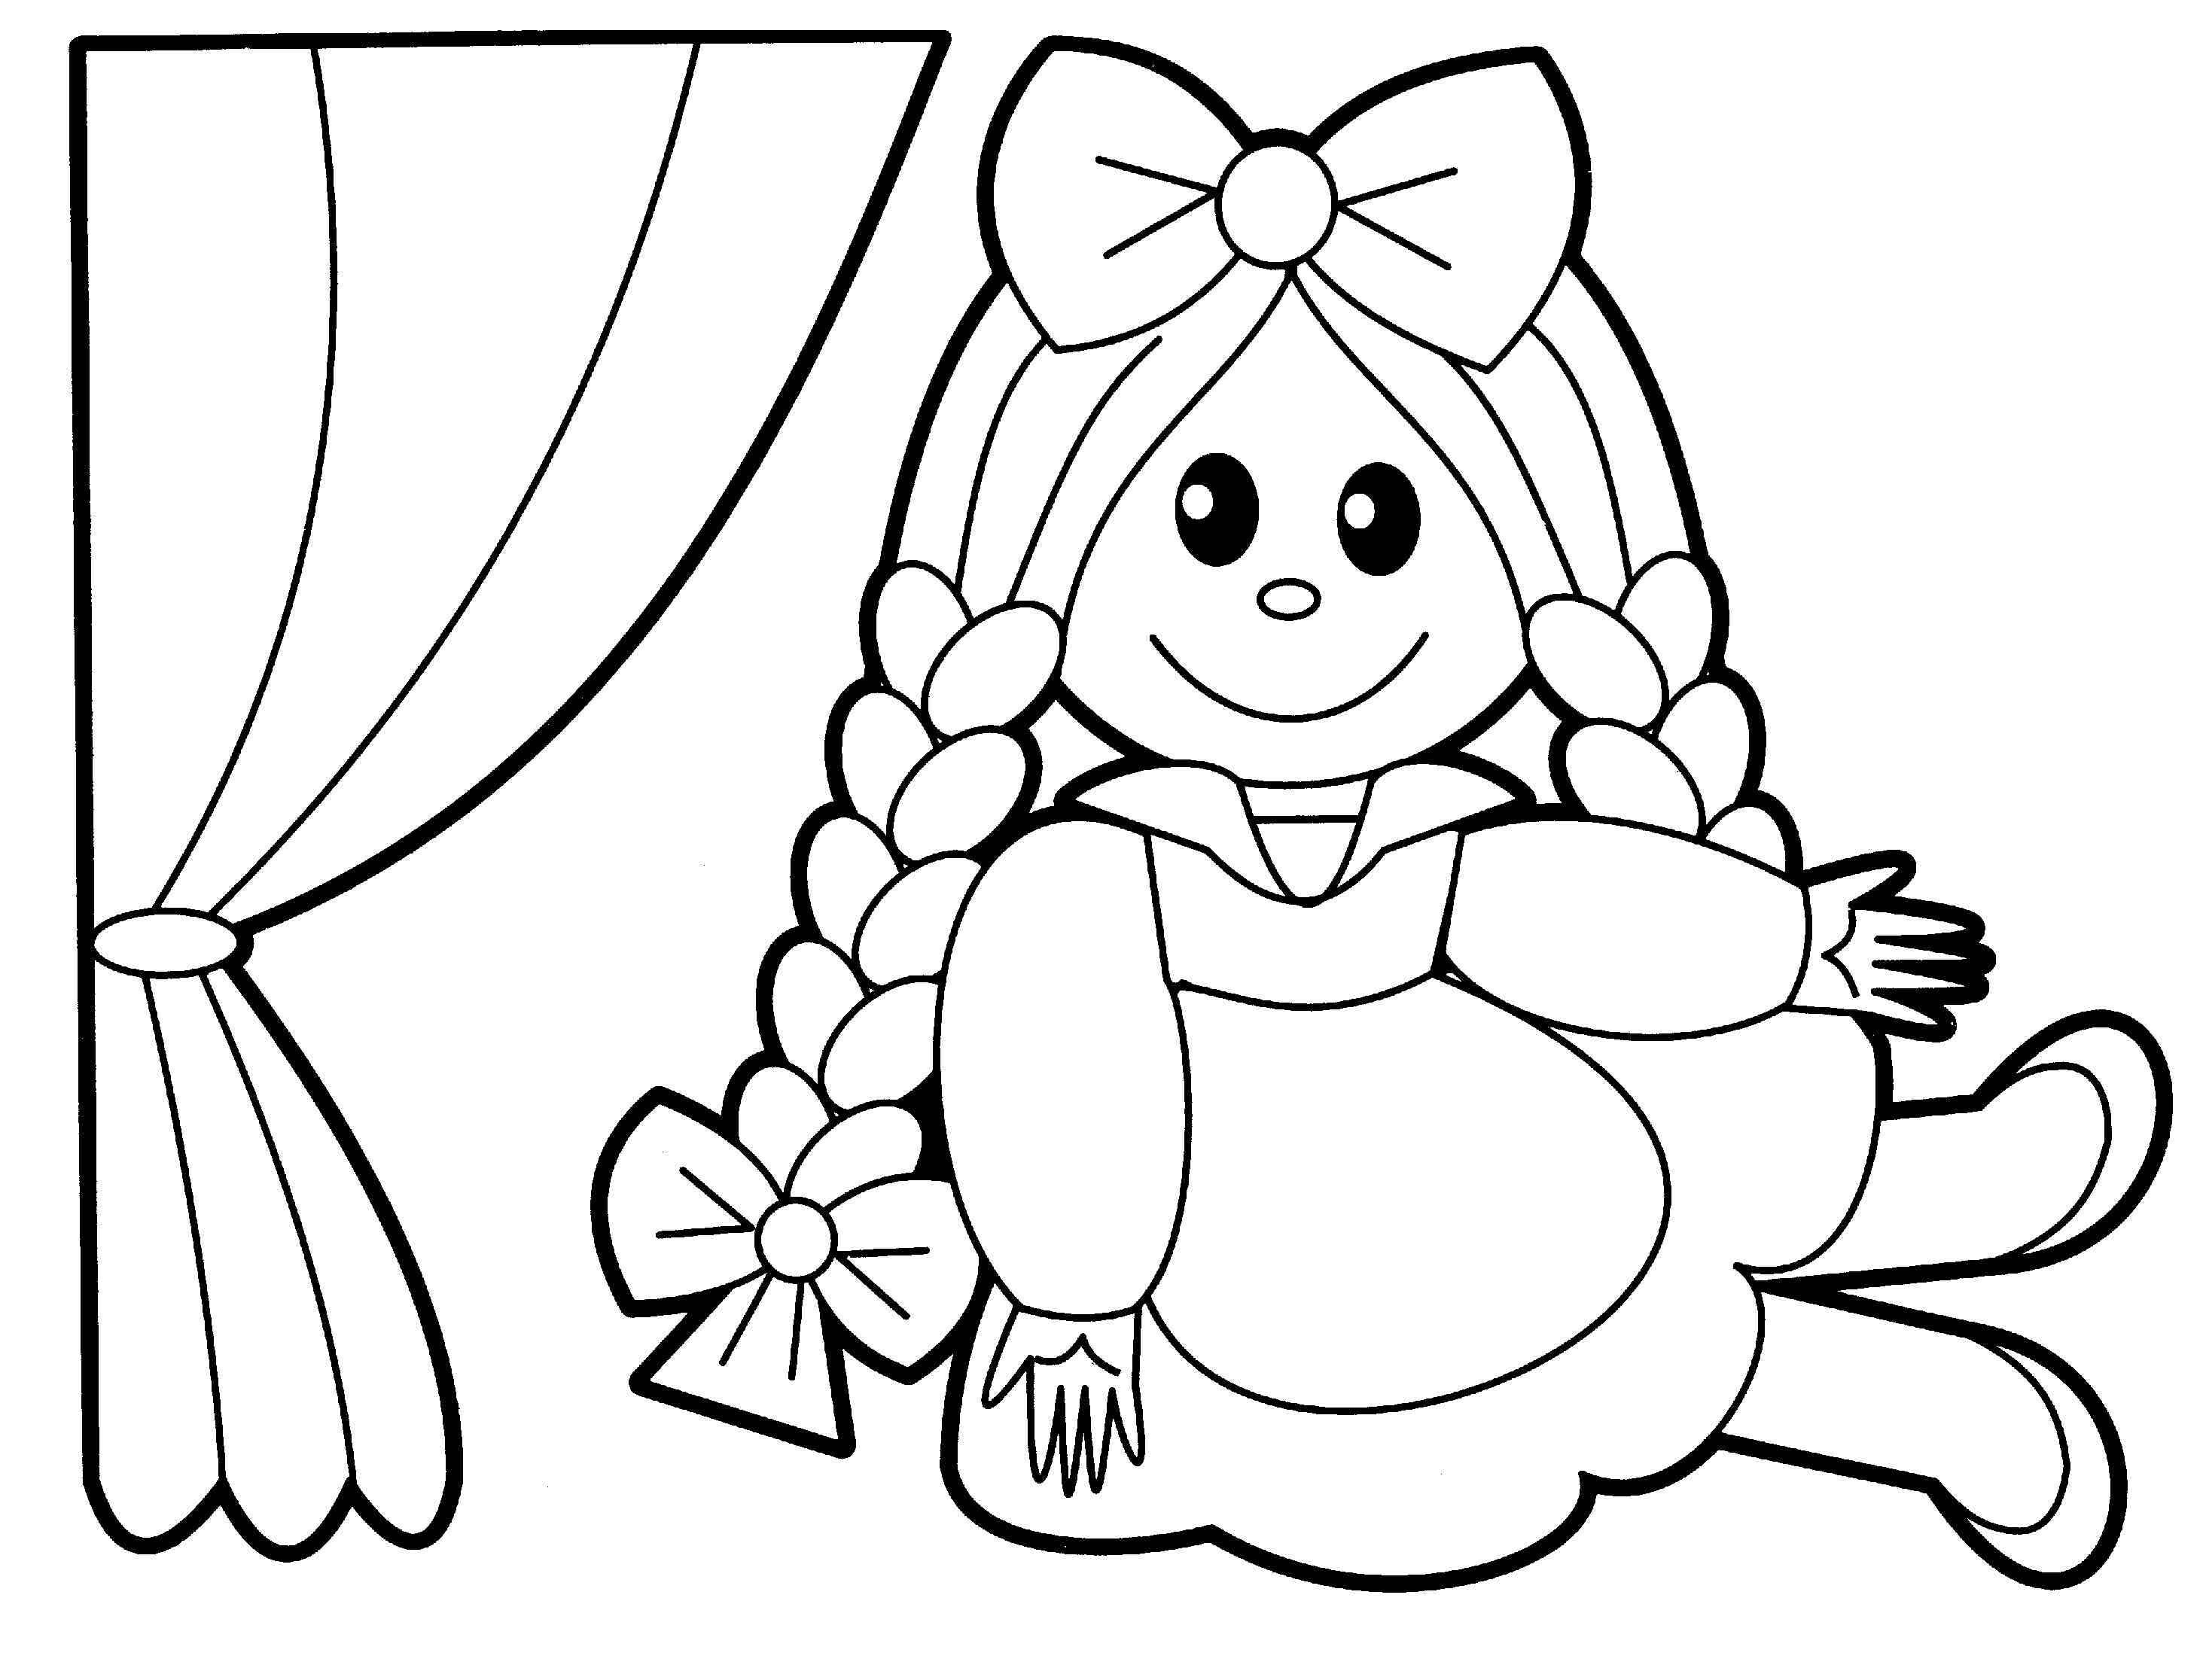 coloring images for kids elephant coloring pages for kids printable for free coloring for images kids